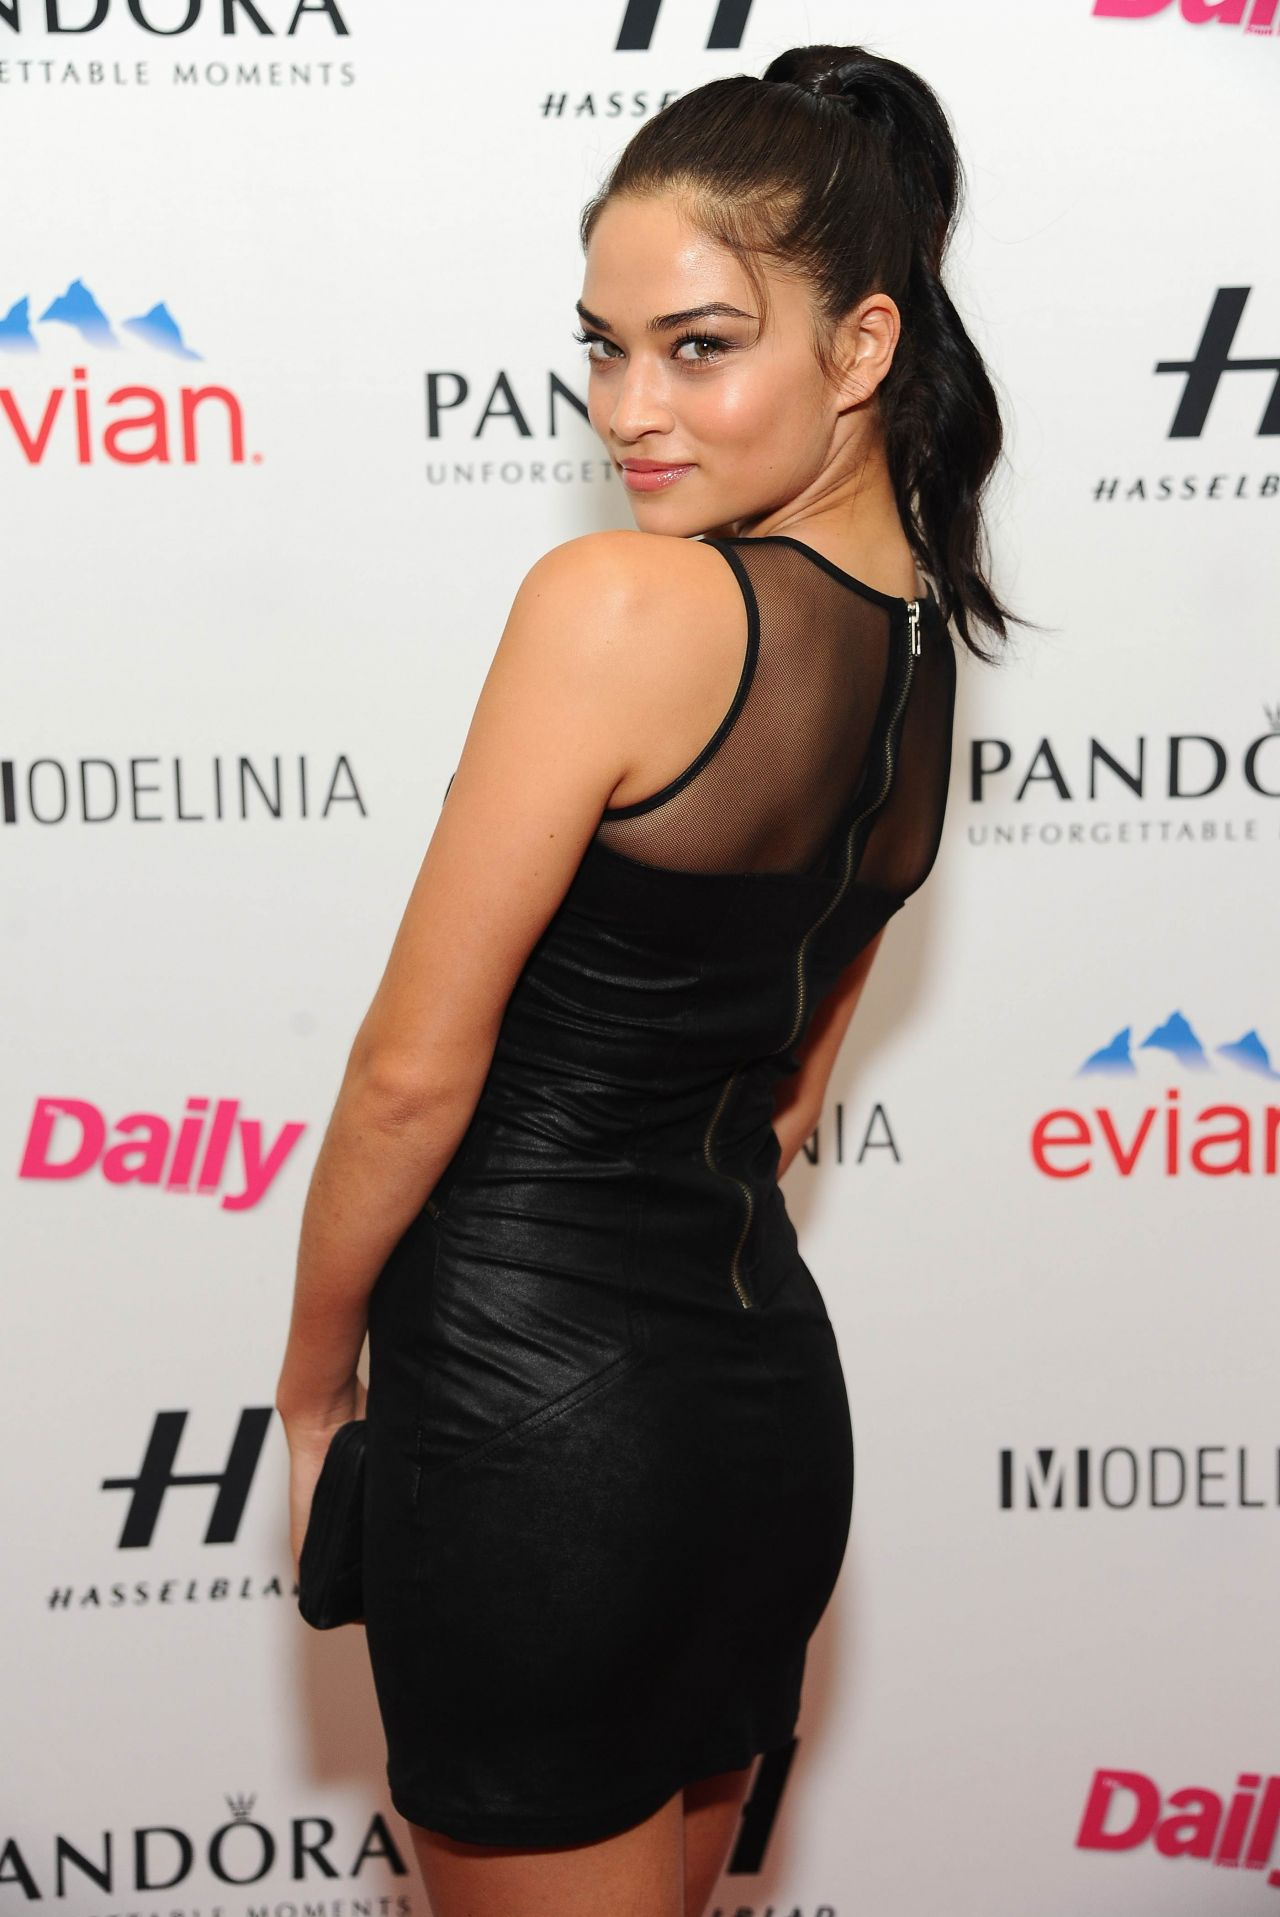 Shanina Shaik in Mini Dress - Models Issue Party Presented by Modelinia at Harlow, New York